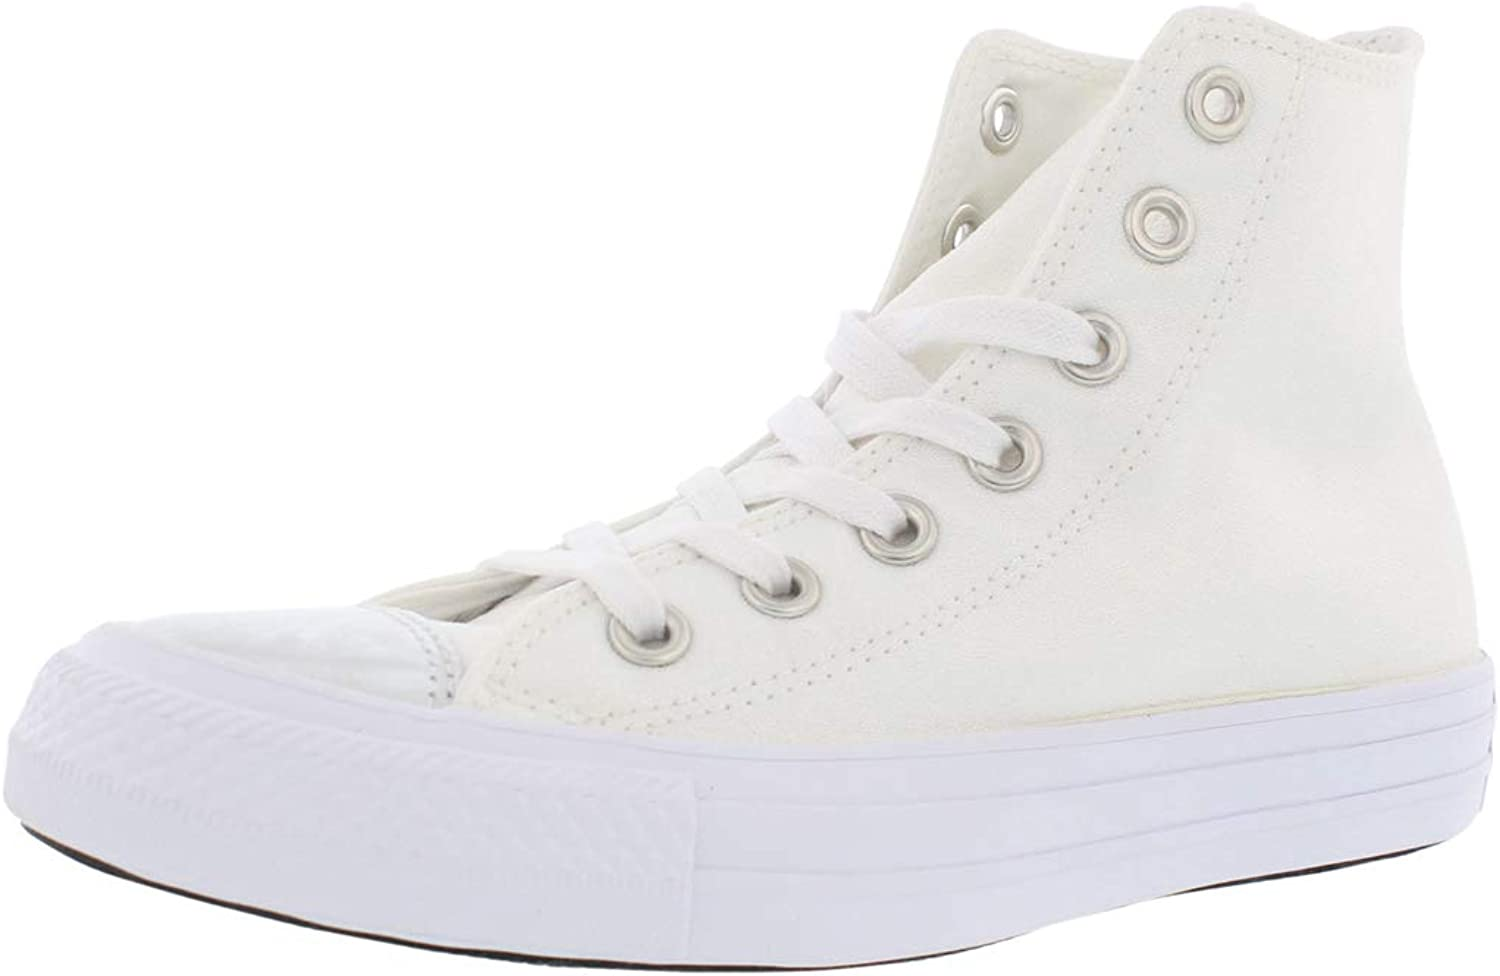 Converse Chuck Taylor All Star Brush-Off Leather Toecap Hi White Pure Silver White Women's shoes